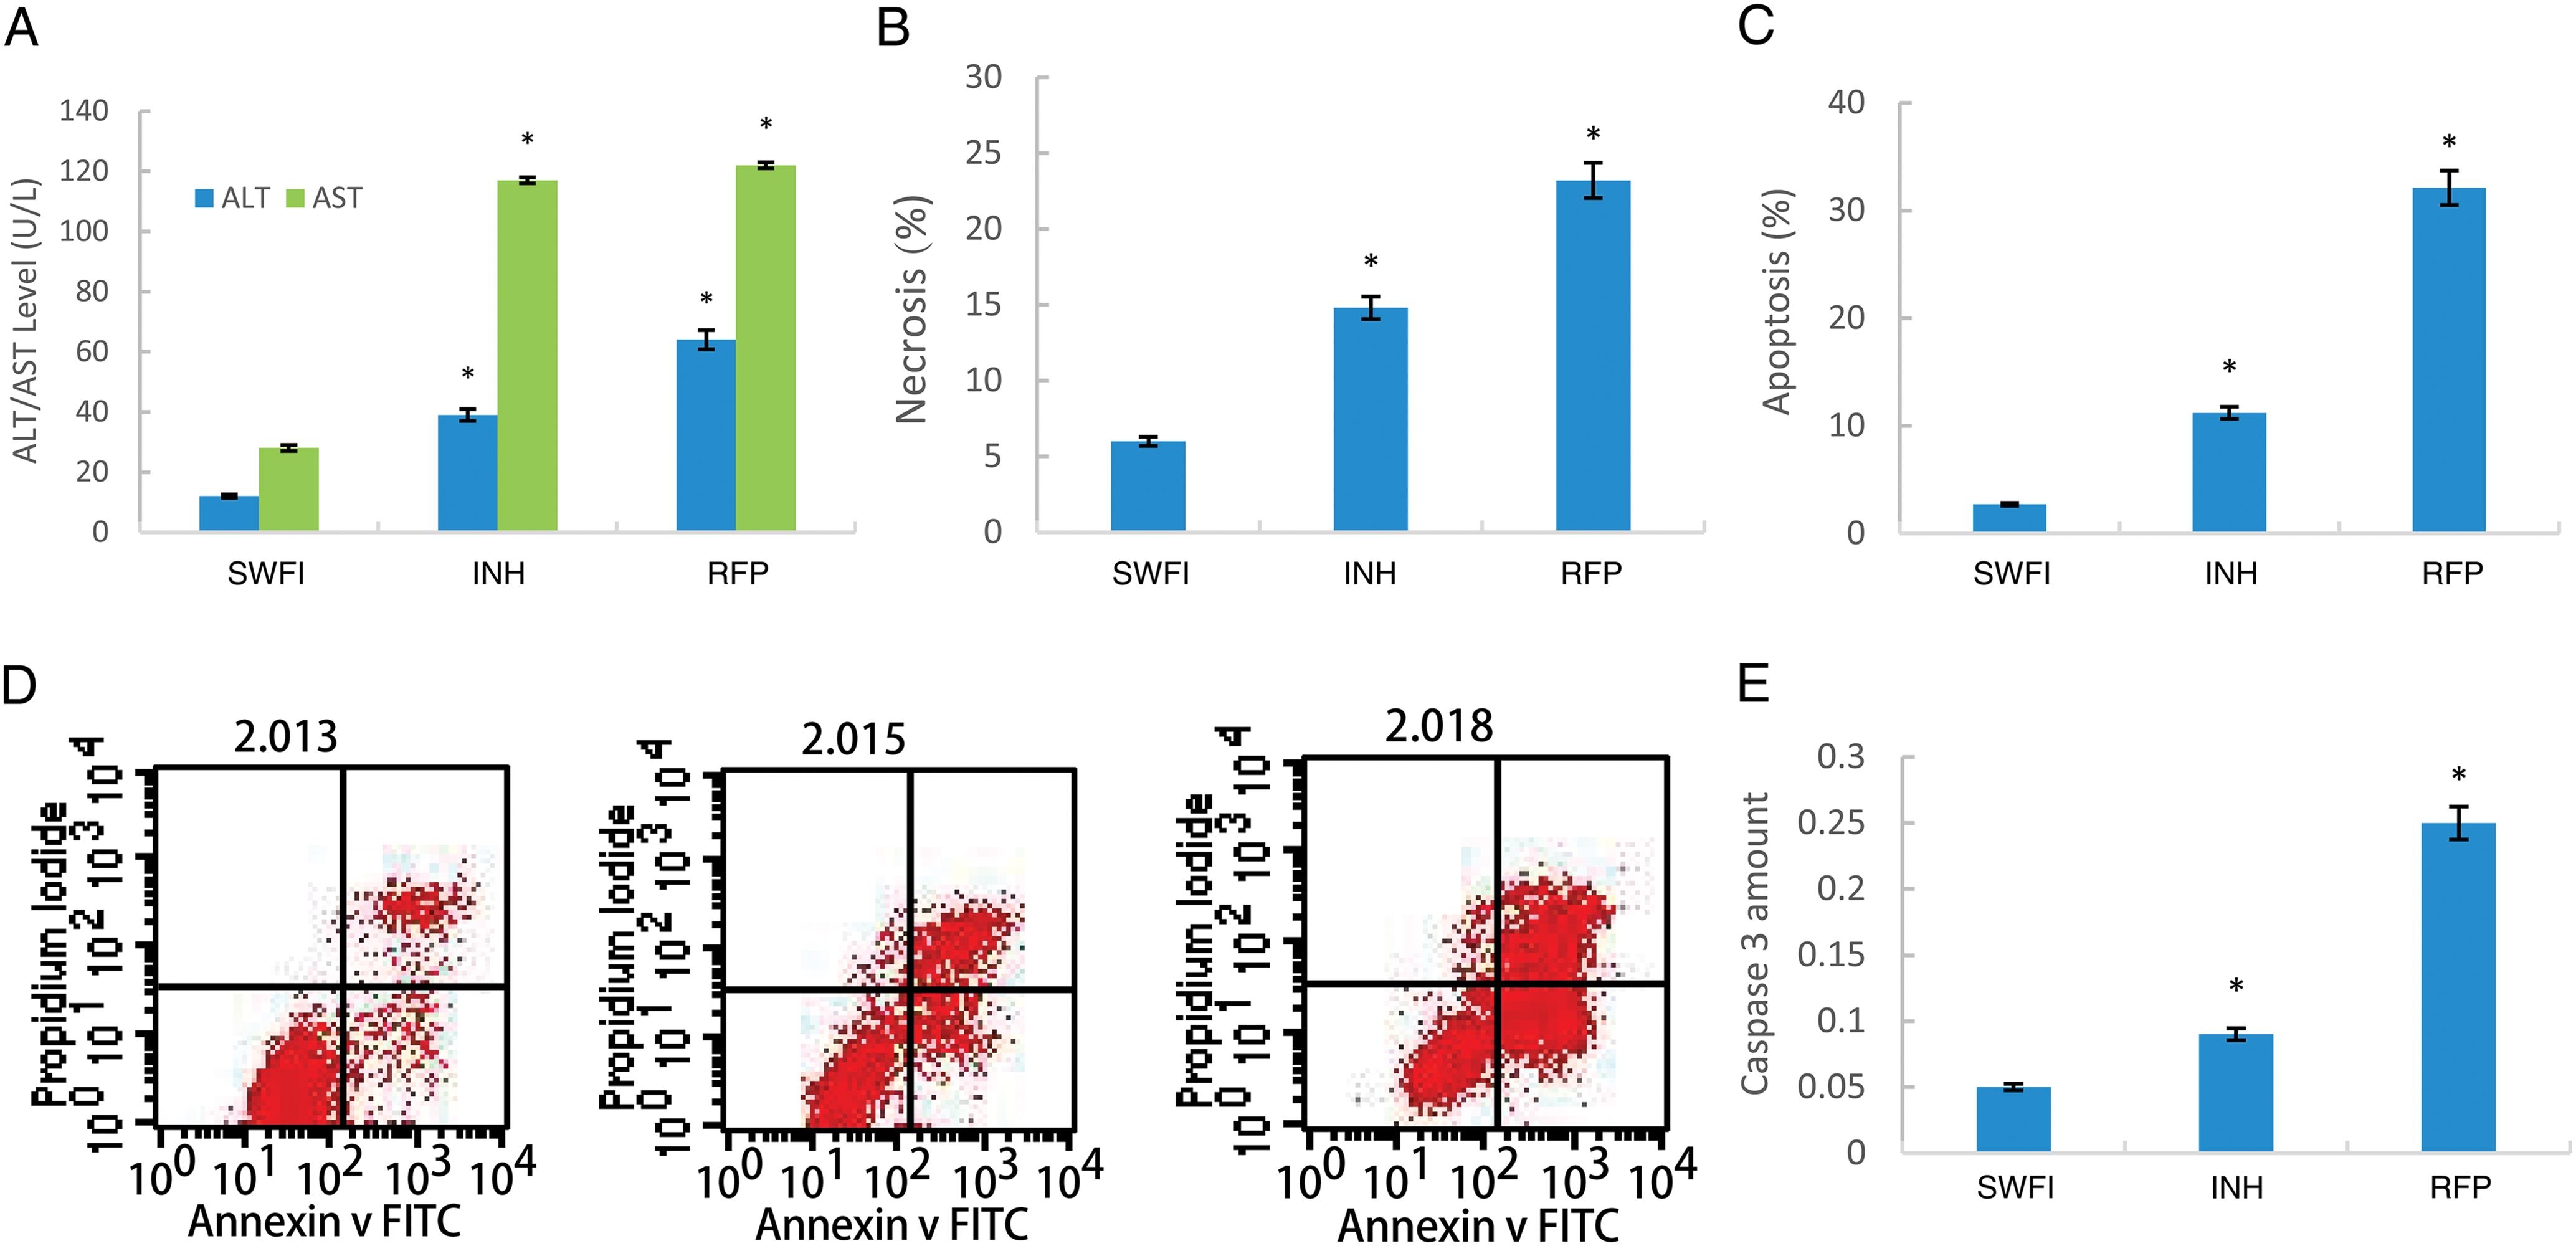 Hepatotoxicity induced by RFP- and INH-stimulated QSG7701 cells.